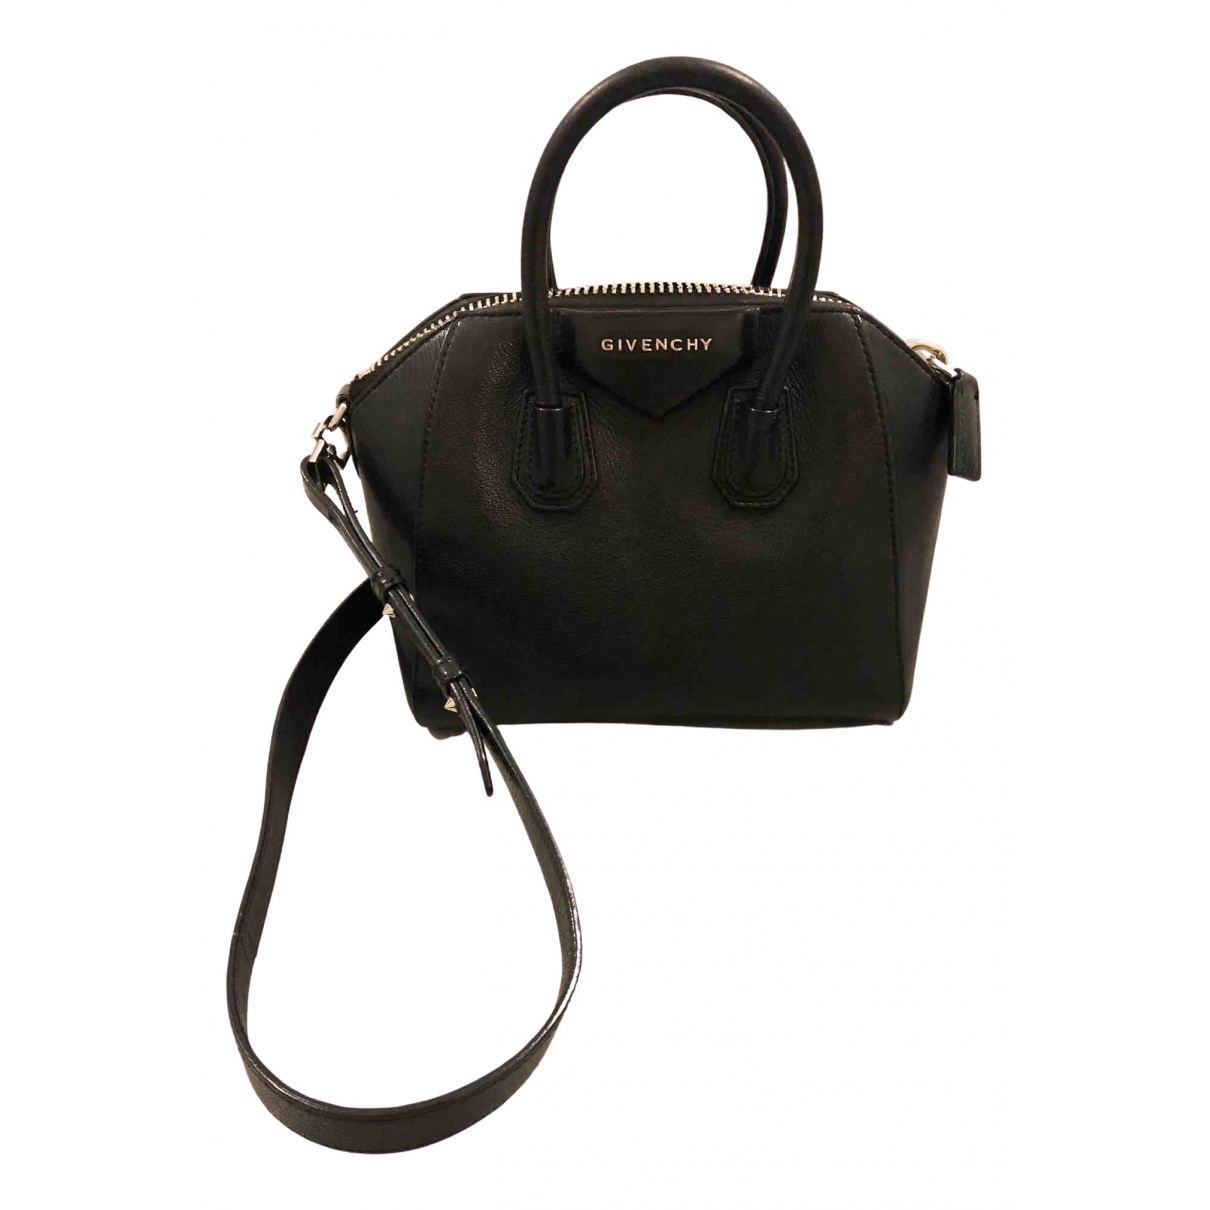 Givenchy Antigona Black Leather handbag for Women N